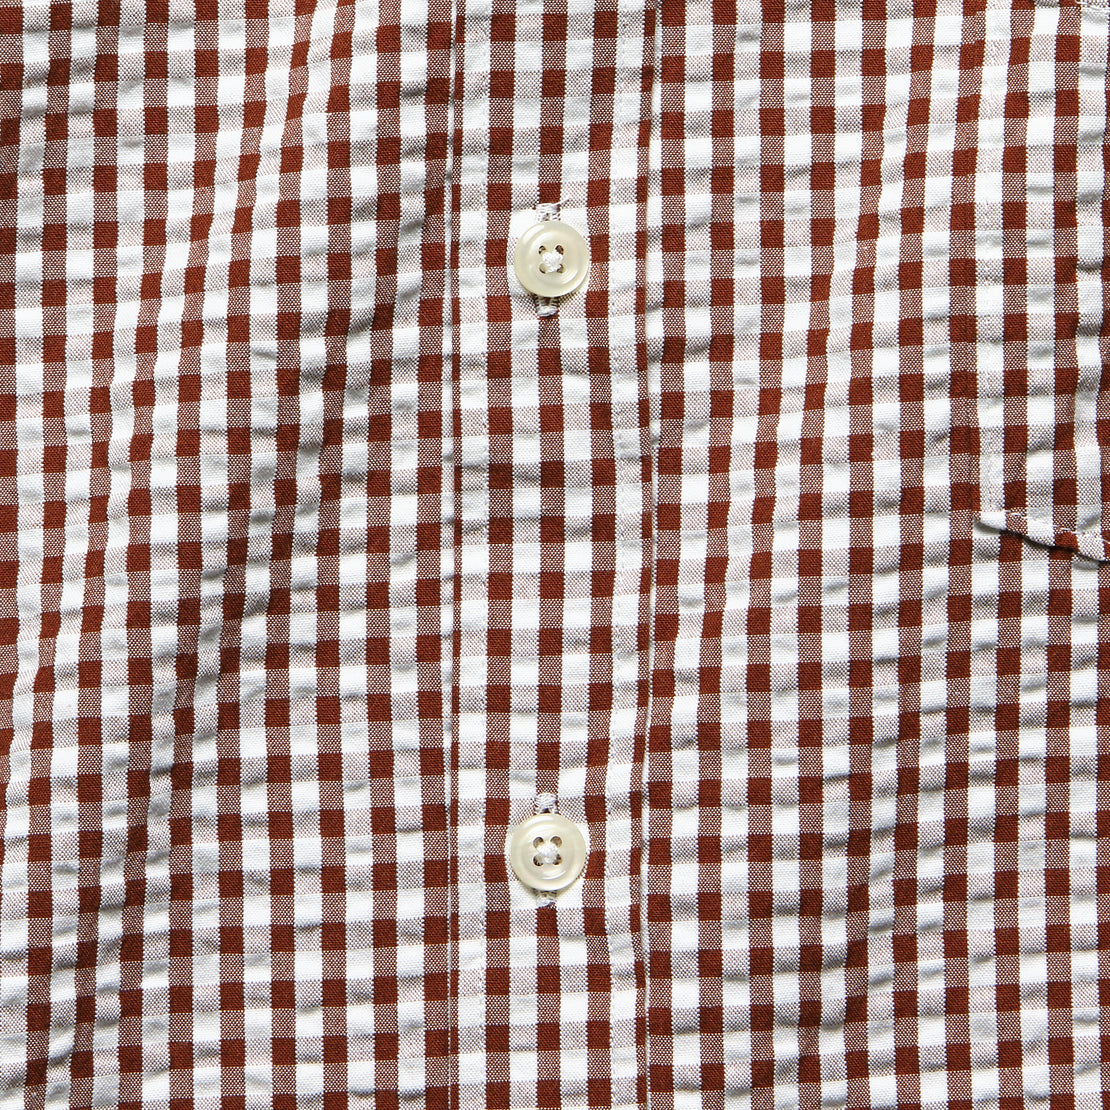 Everyday Shirt - Brown Gingham Seersucker